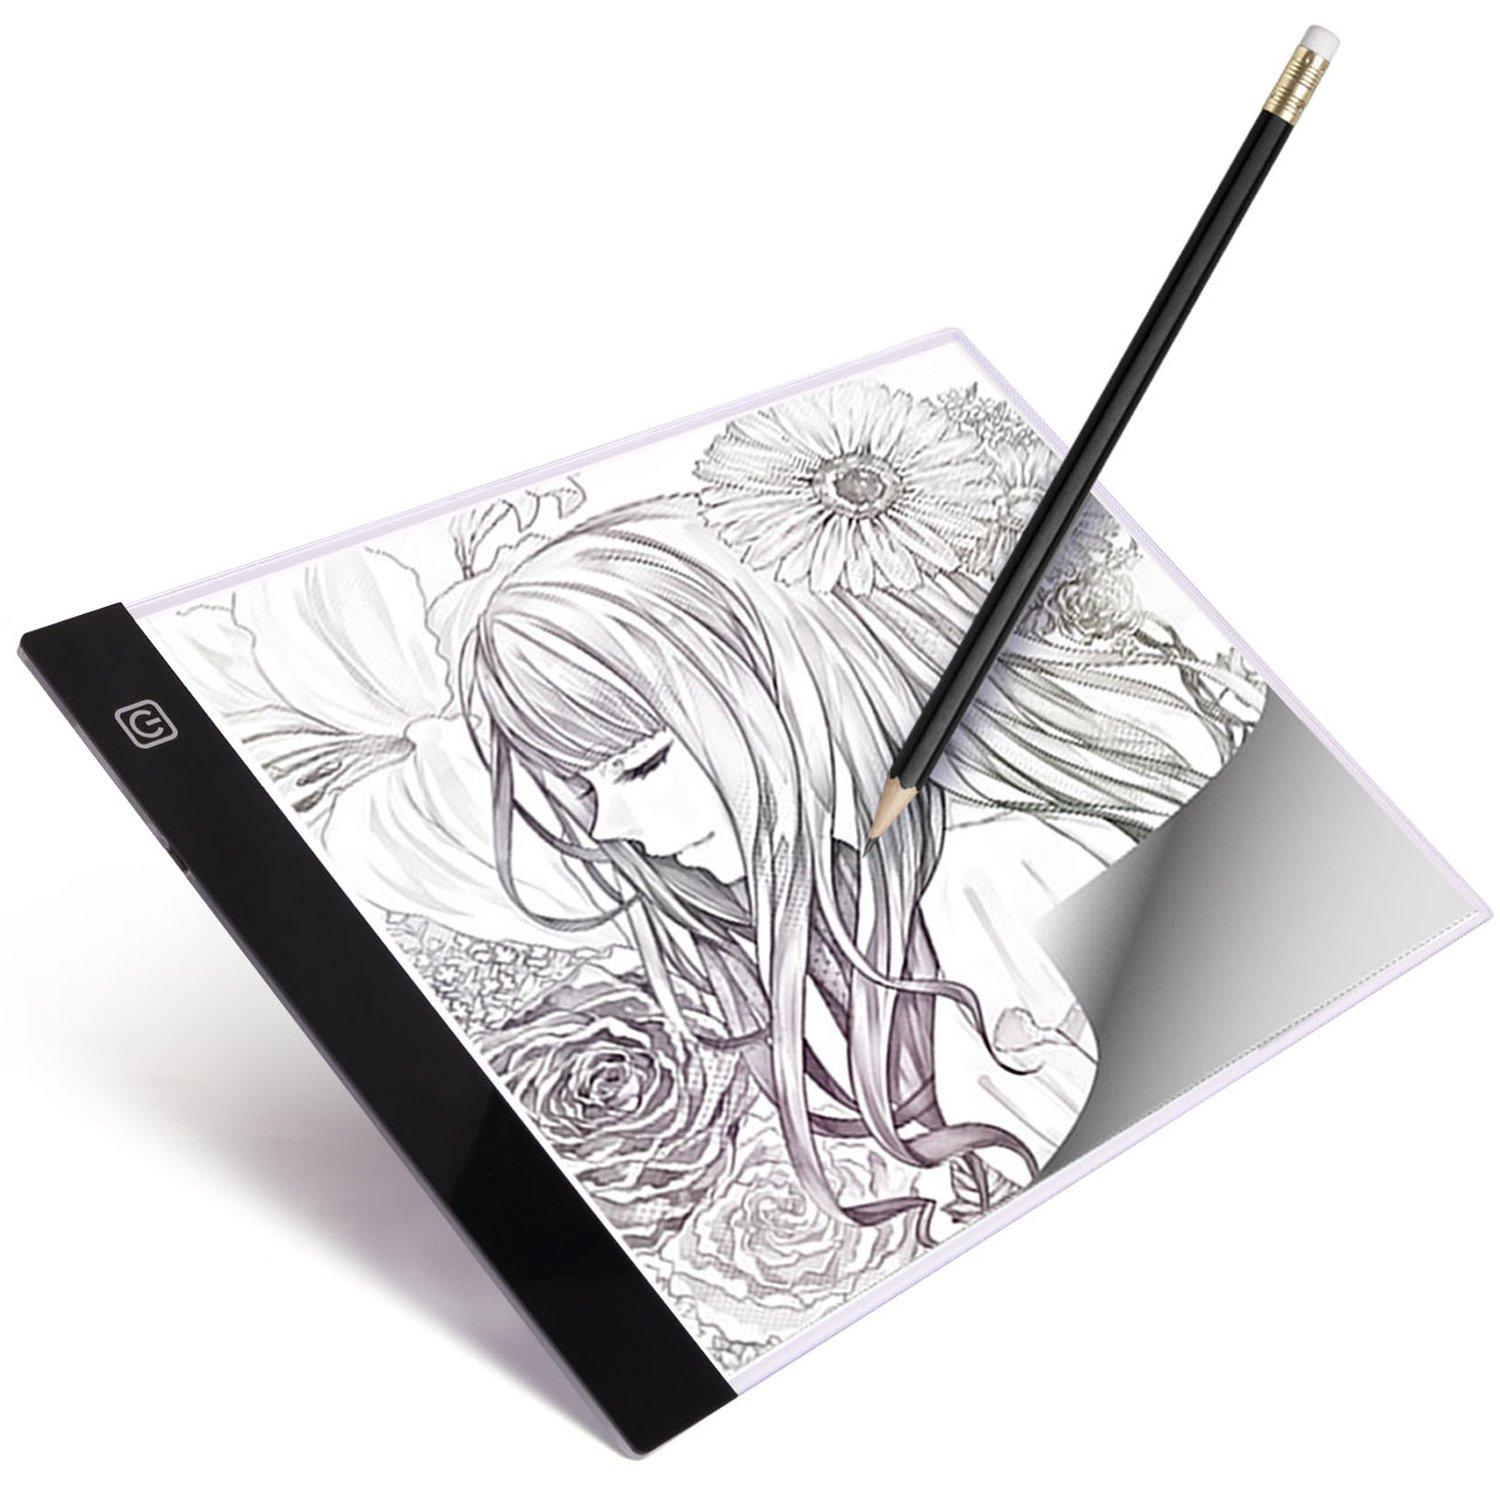 A4 LED Light Box Tracer Ultra-Thin USB Powered Portable Dimmable Brightness LED Artcraft Tracing Light Pad Light Box for Artists Drawing Sketching Animation Designing Stencilling X-ray Viewing by Luditek